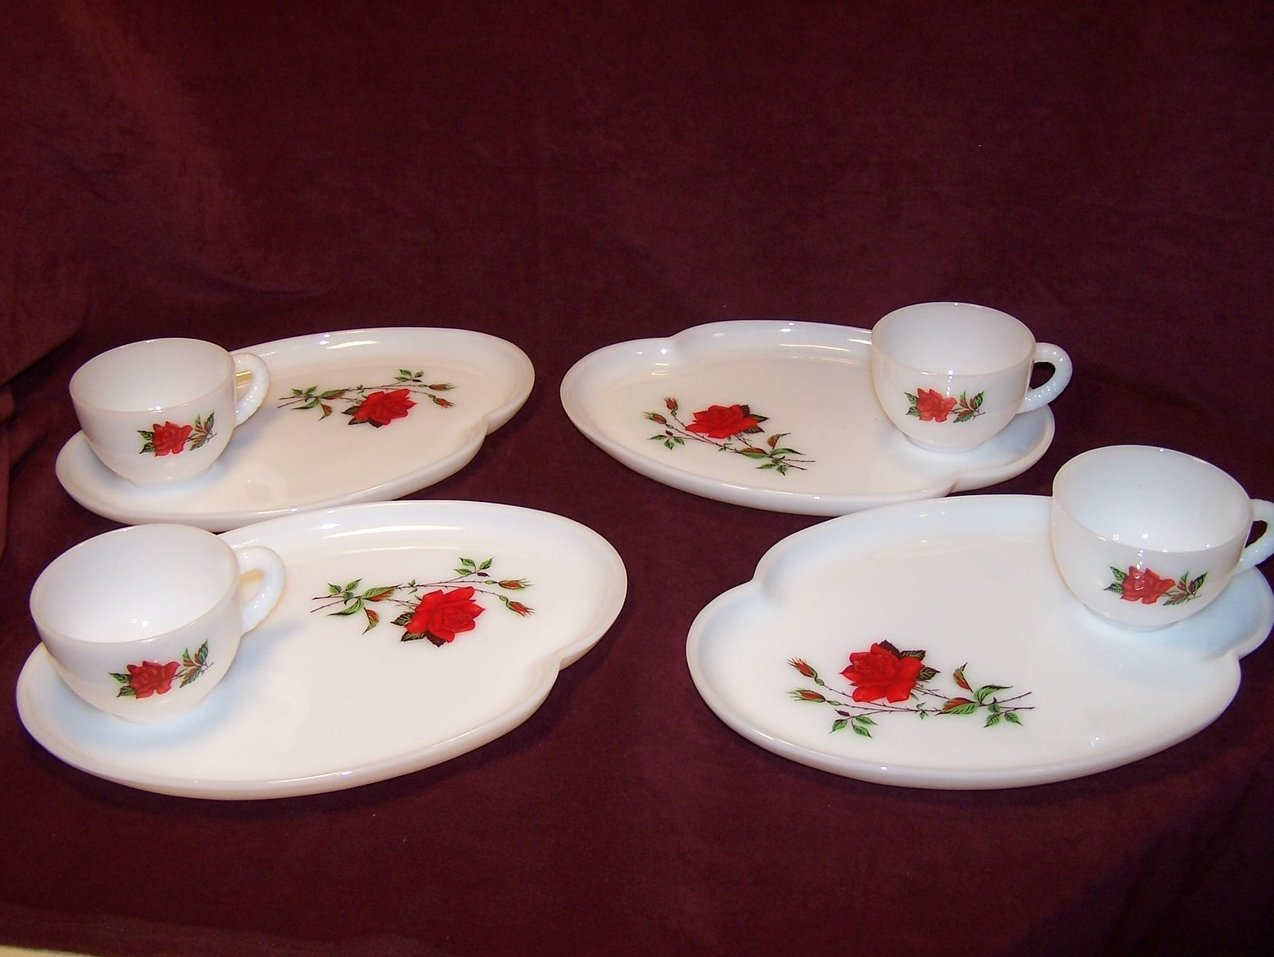 Snack Plate Teacup Rosecrest Milk Glass Federal Glass